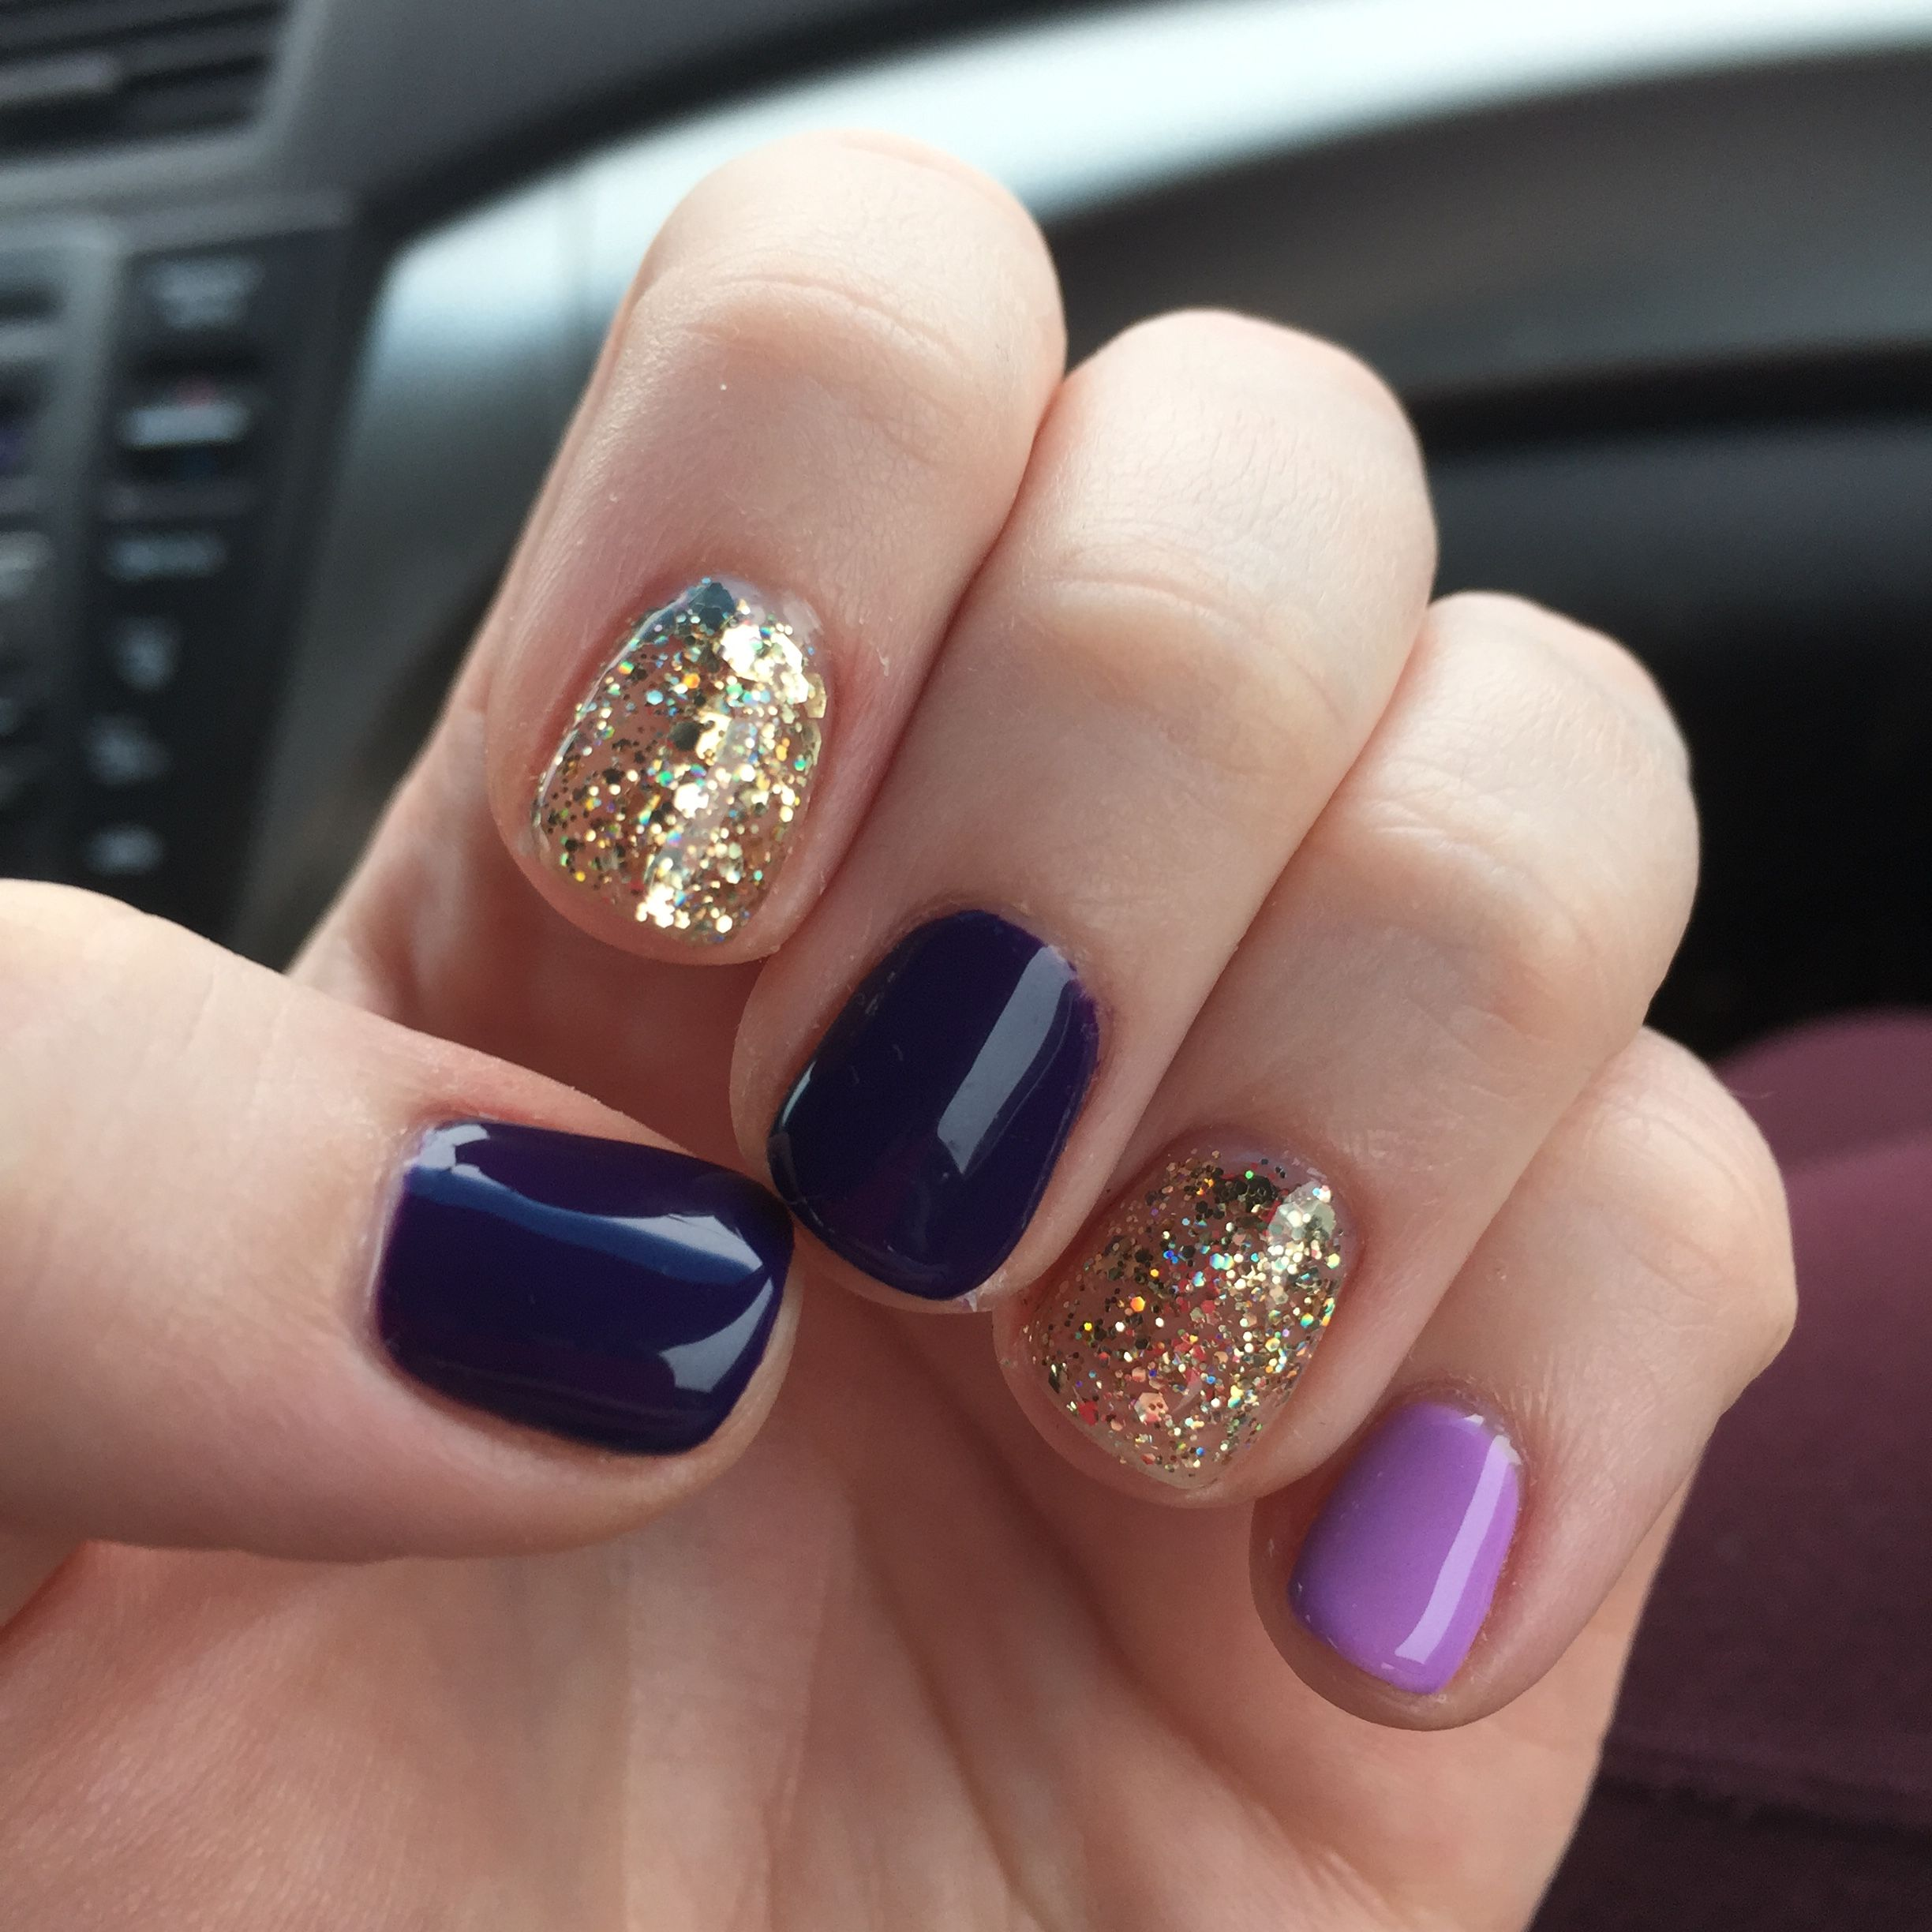 A no-chip manicure from: http://kinzienailspachicago.com Purple ...